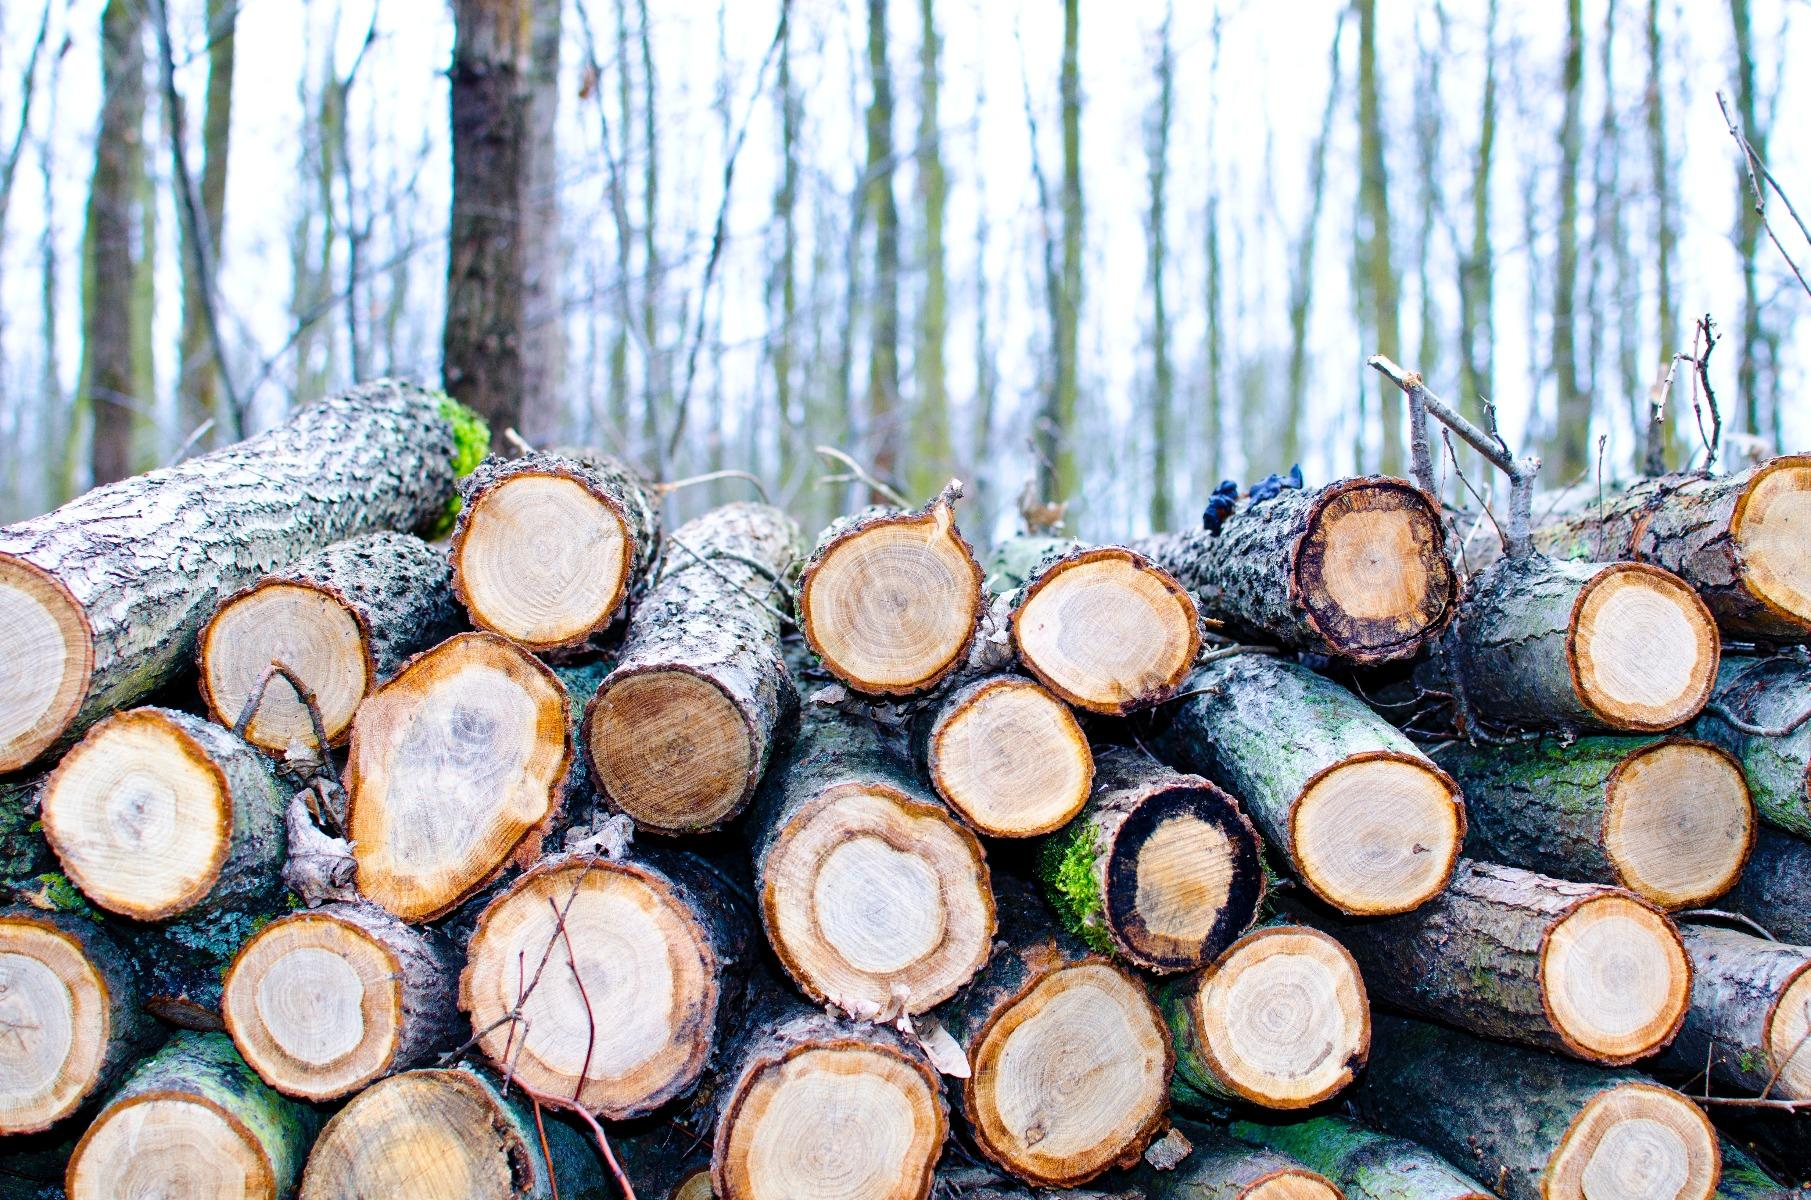 Minimal Impact Logging : How to Take the Trees You'll Use Without Damaging the Rest